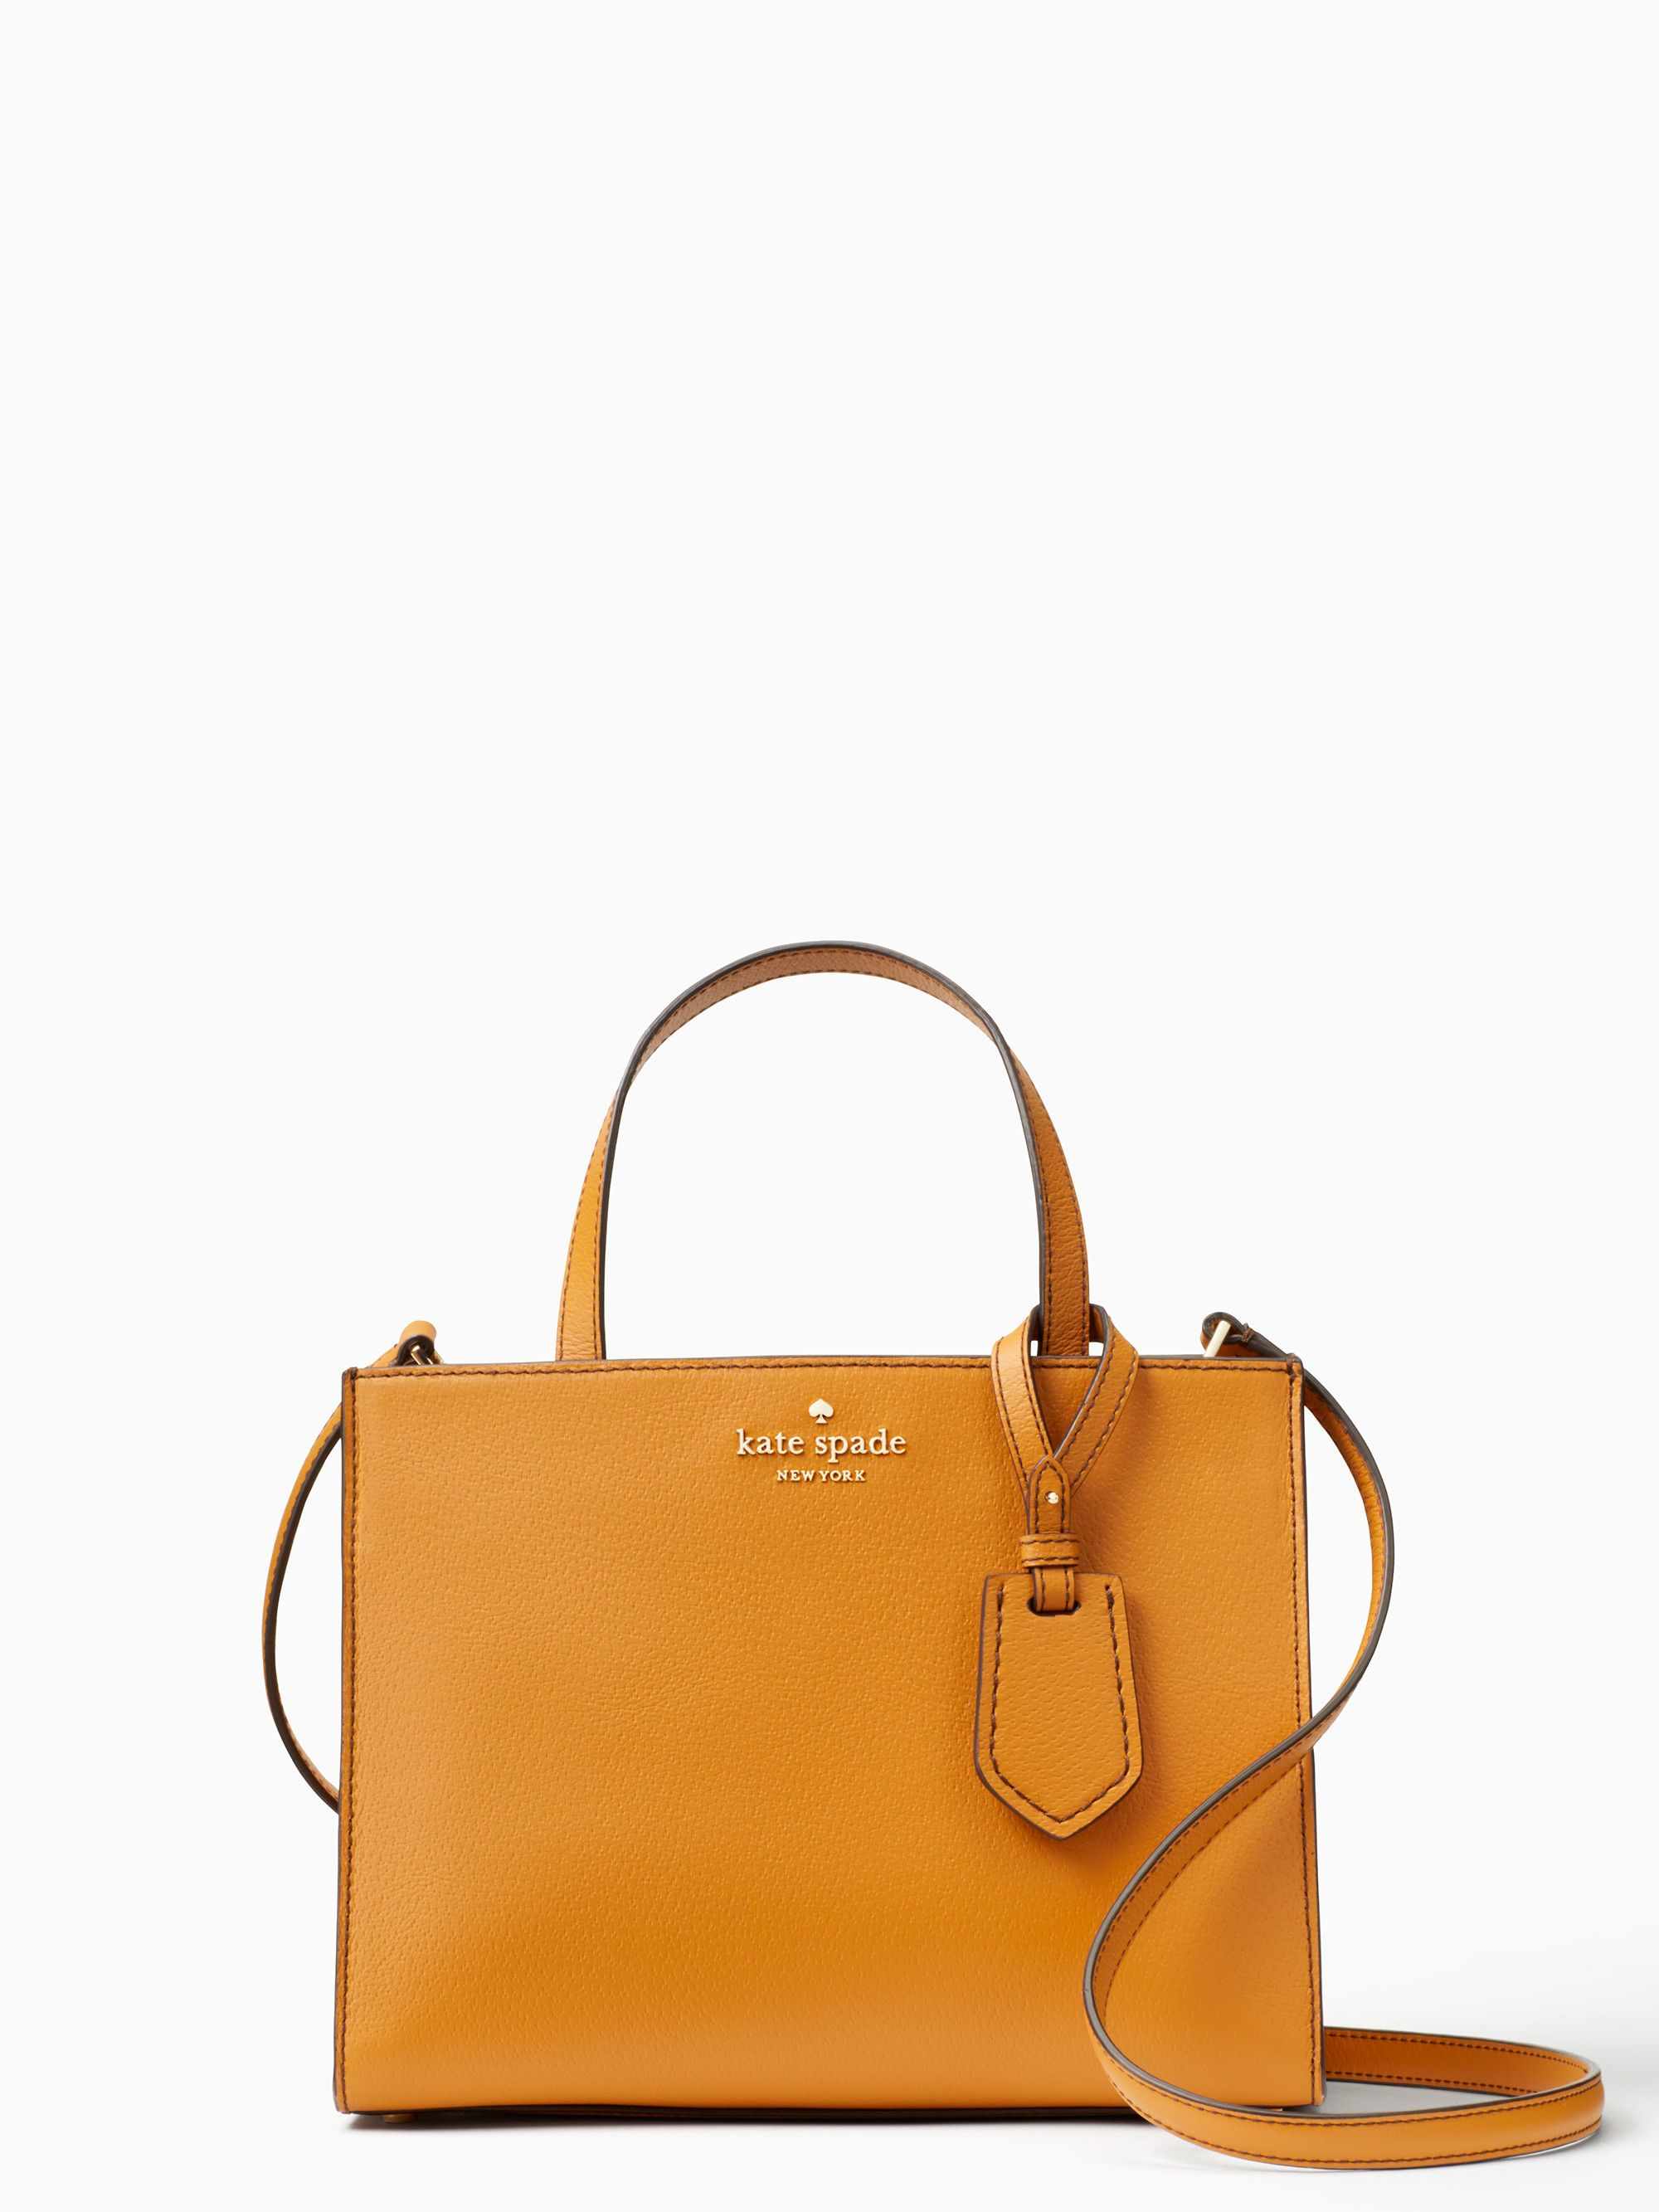 304ebc848163 Kate Spade New York Thompson Street Sam in Passion Fruit | My Wish ...